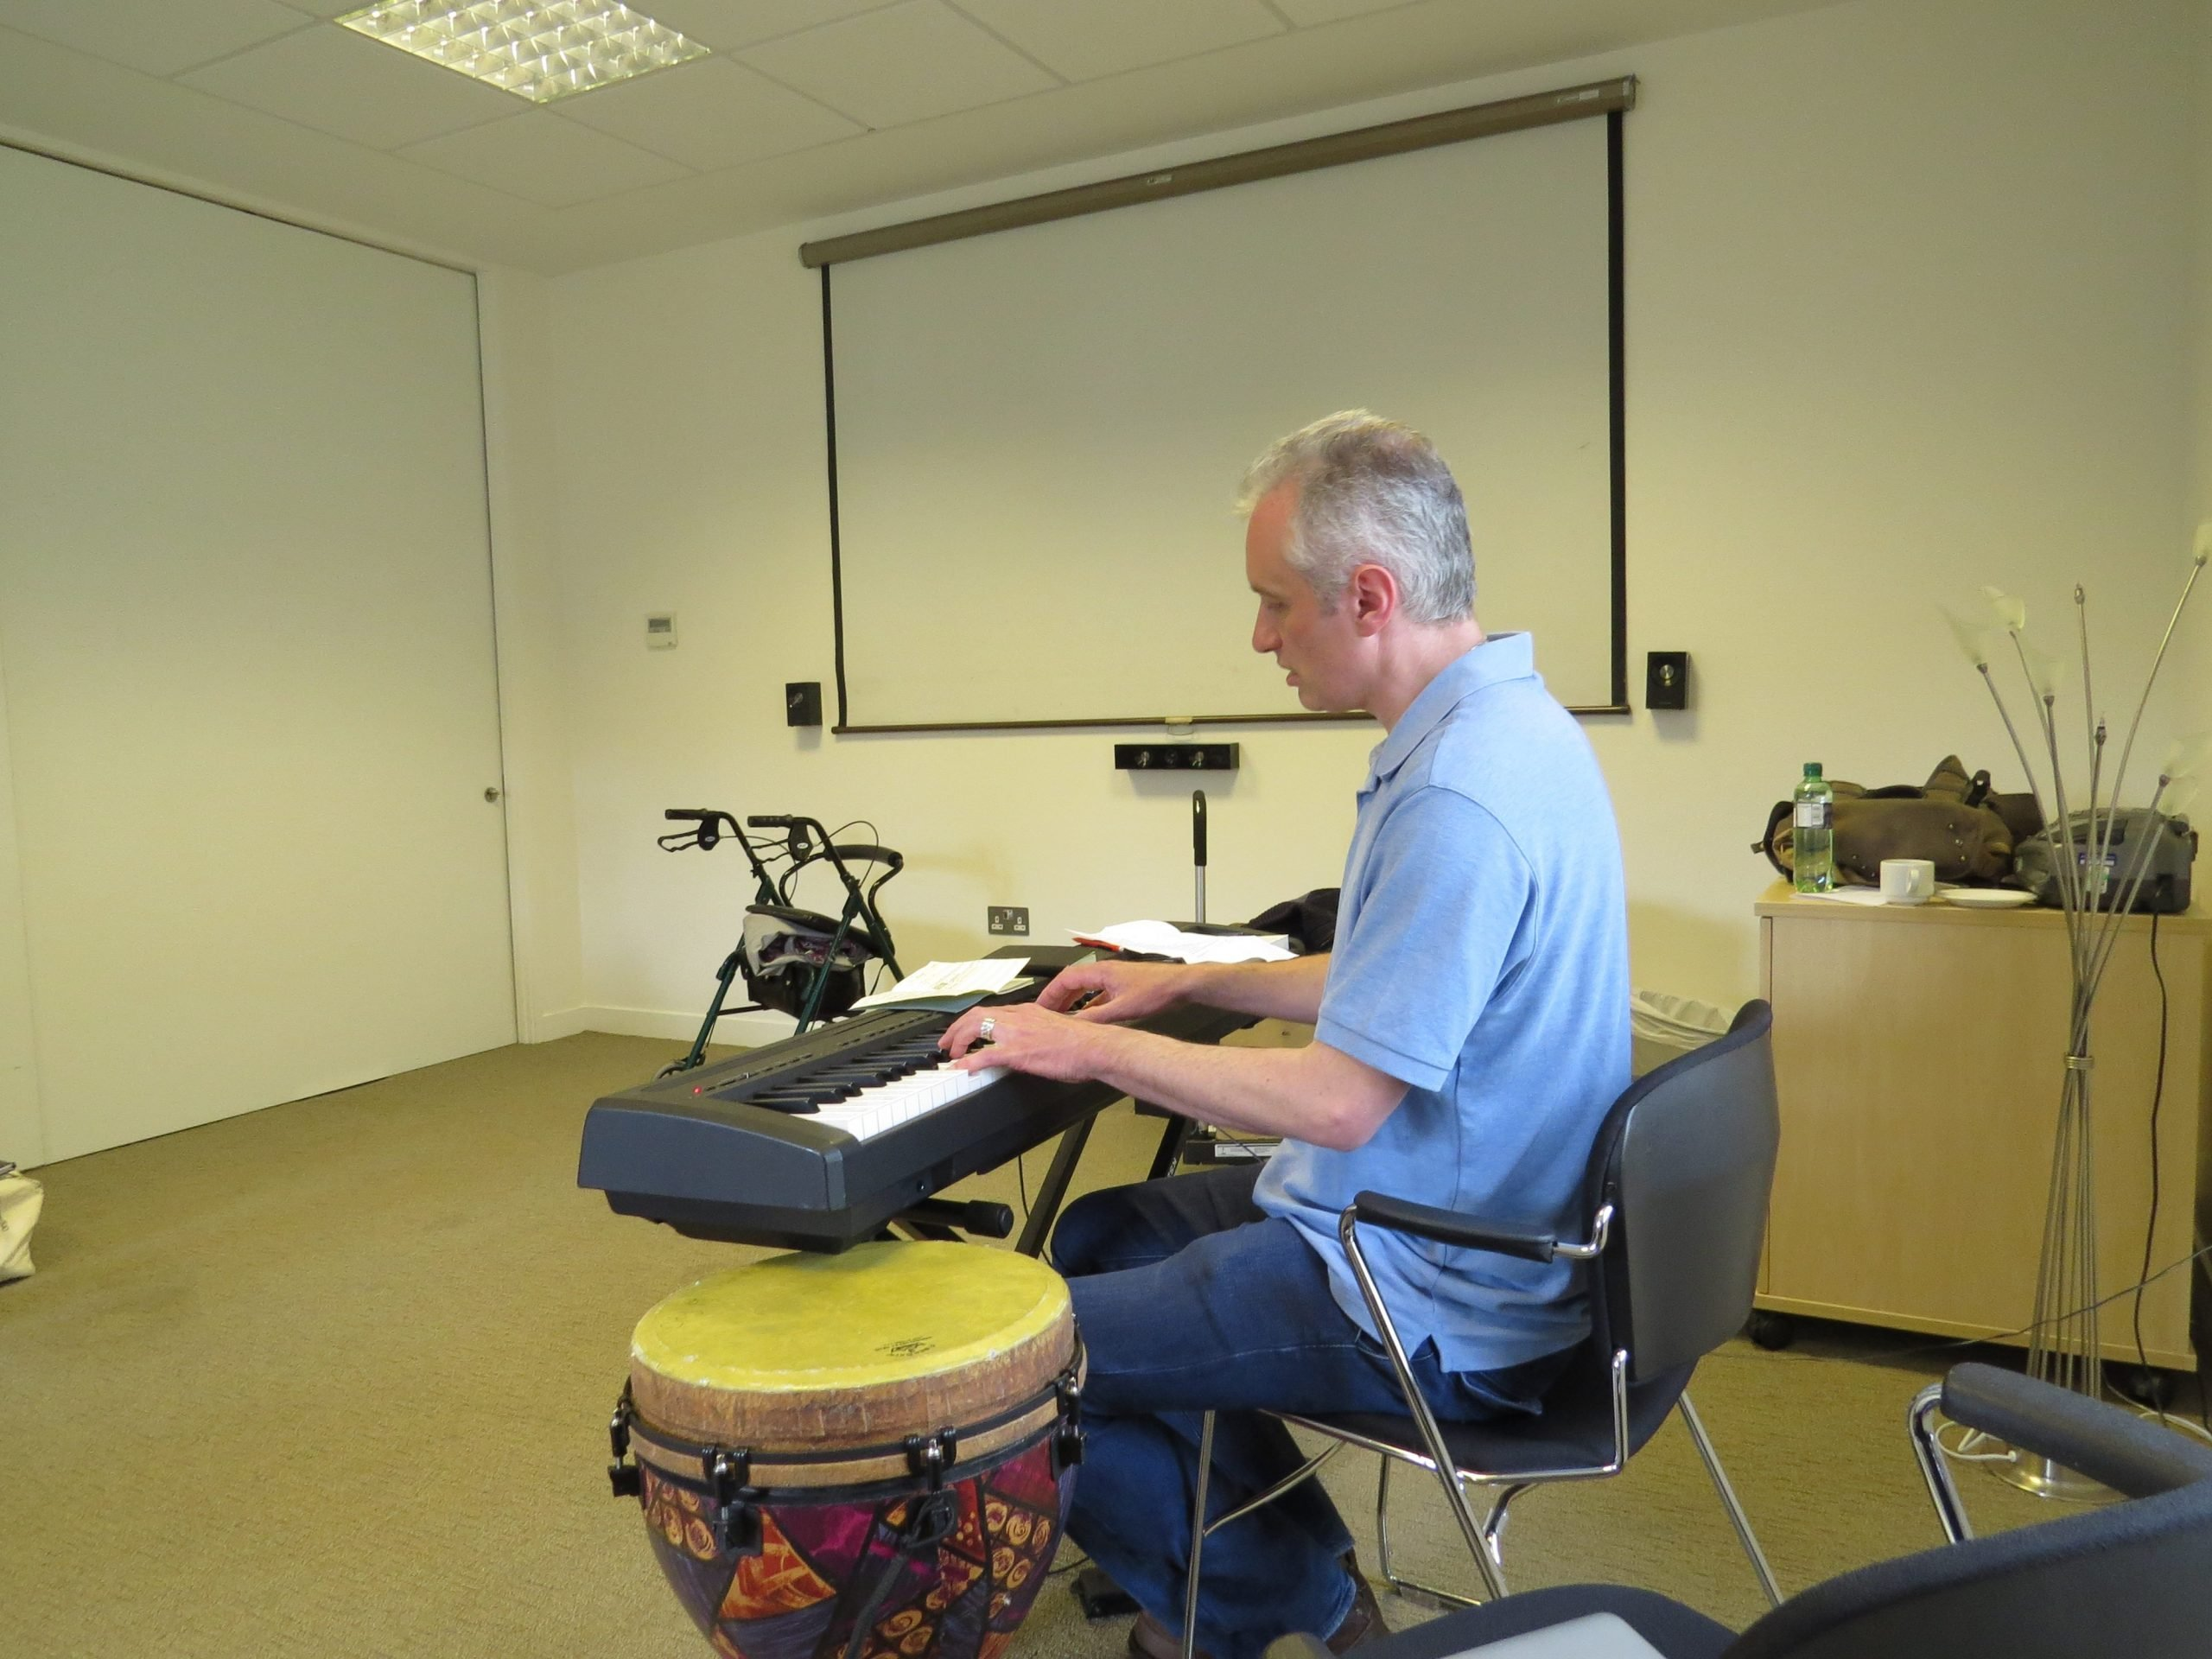 Developing material during a songwriting project with CLS at St Joseph